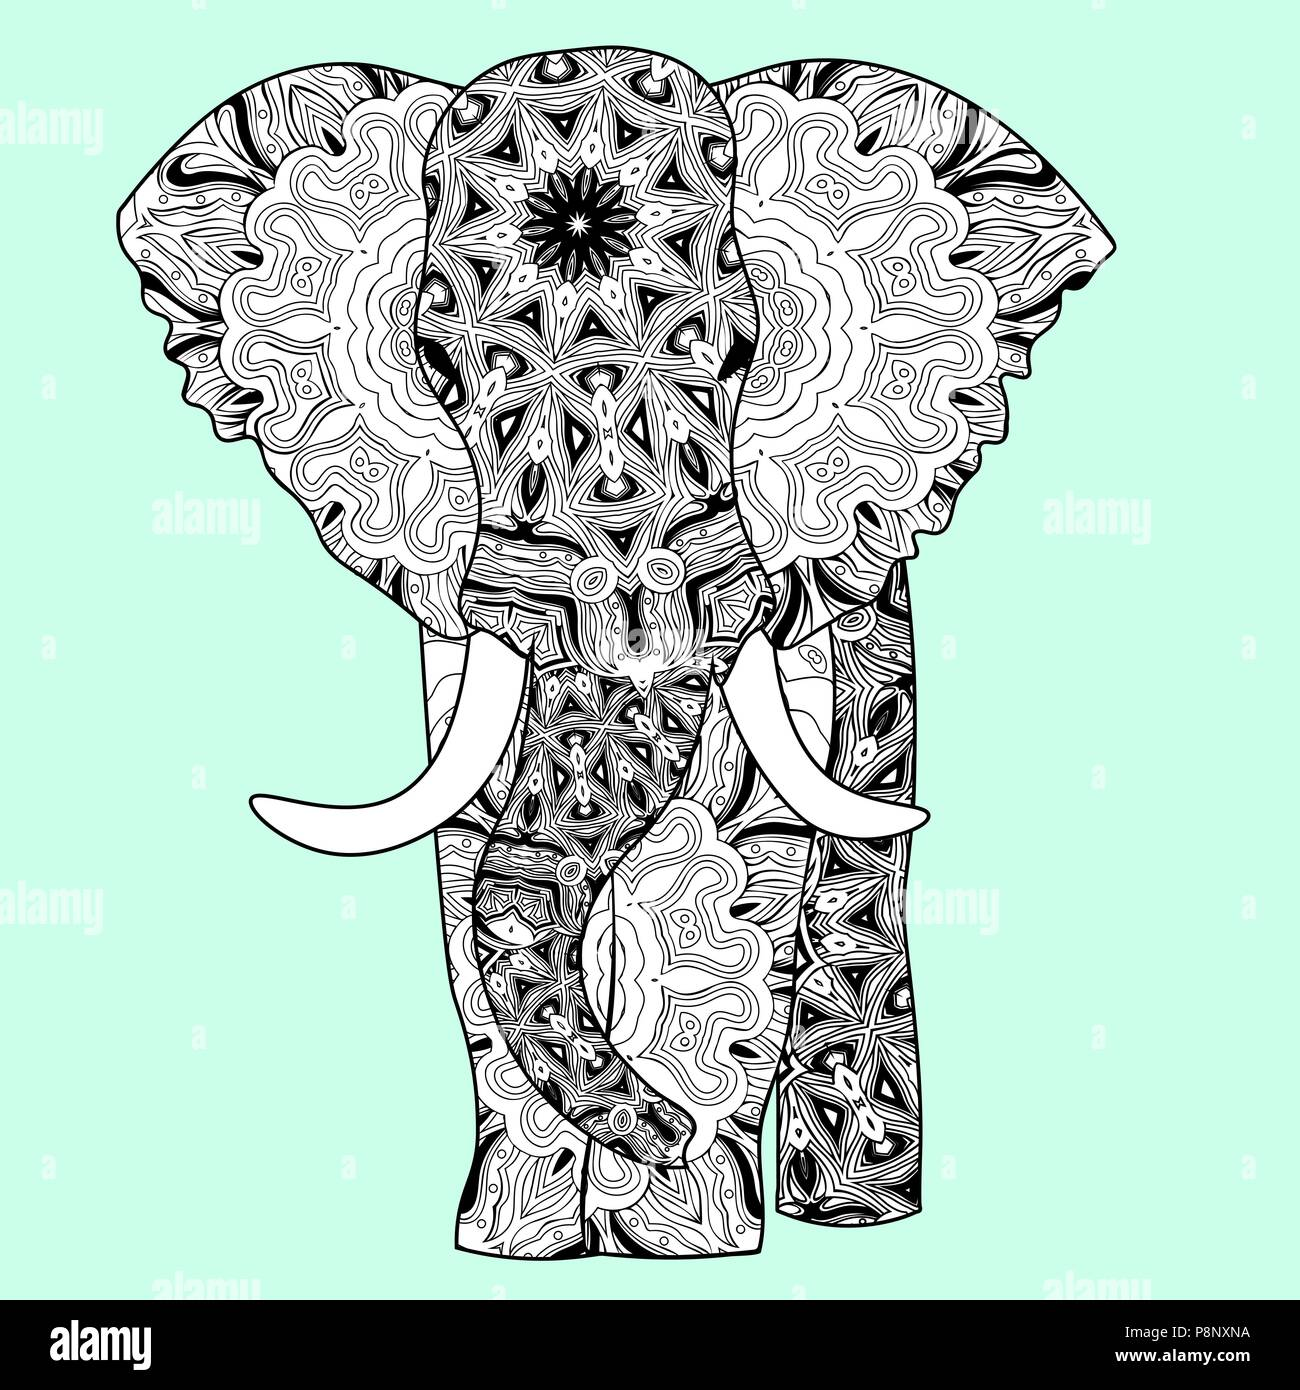 Zentangle Elefant Vorlage Cartoon Elephant Animal Outline Stockfotos Cartoon